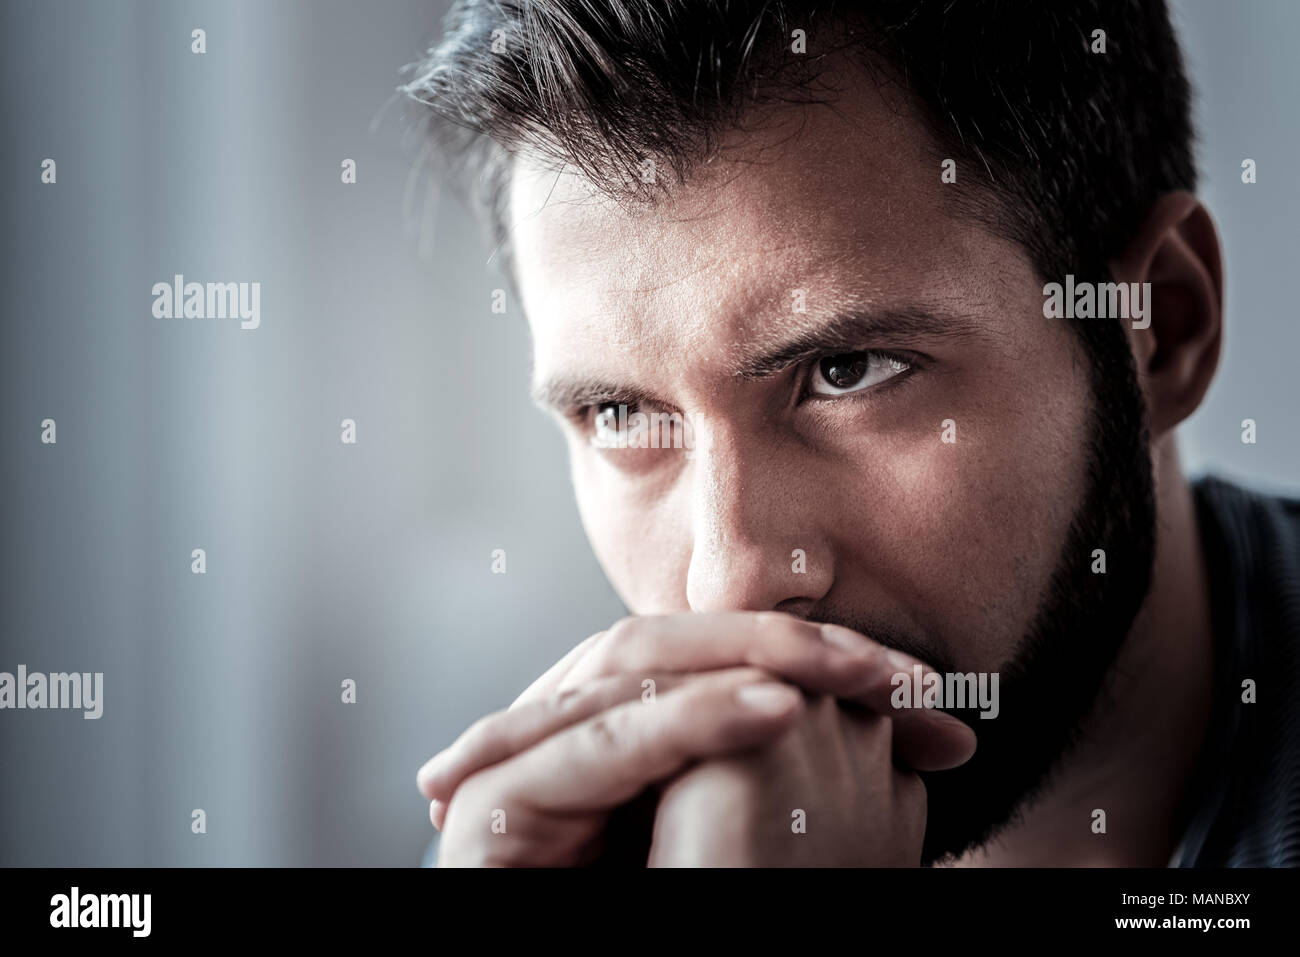 Portrait of an unhappy young man - Stock Image